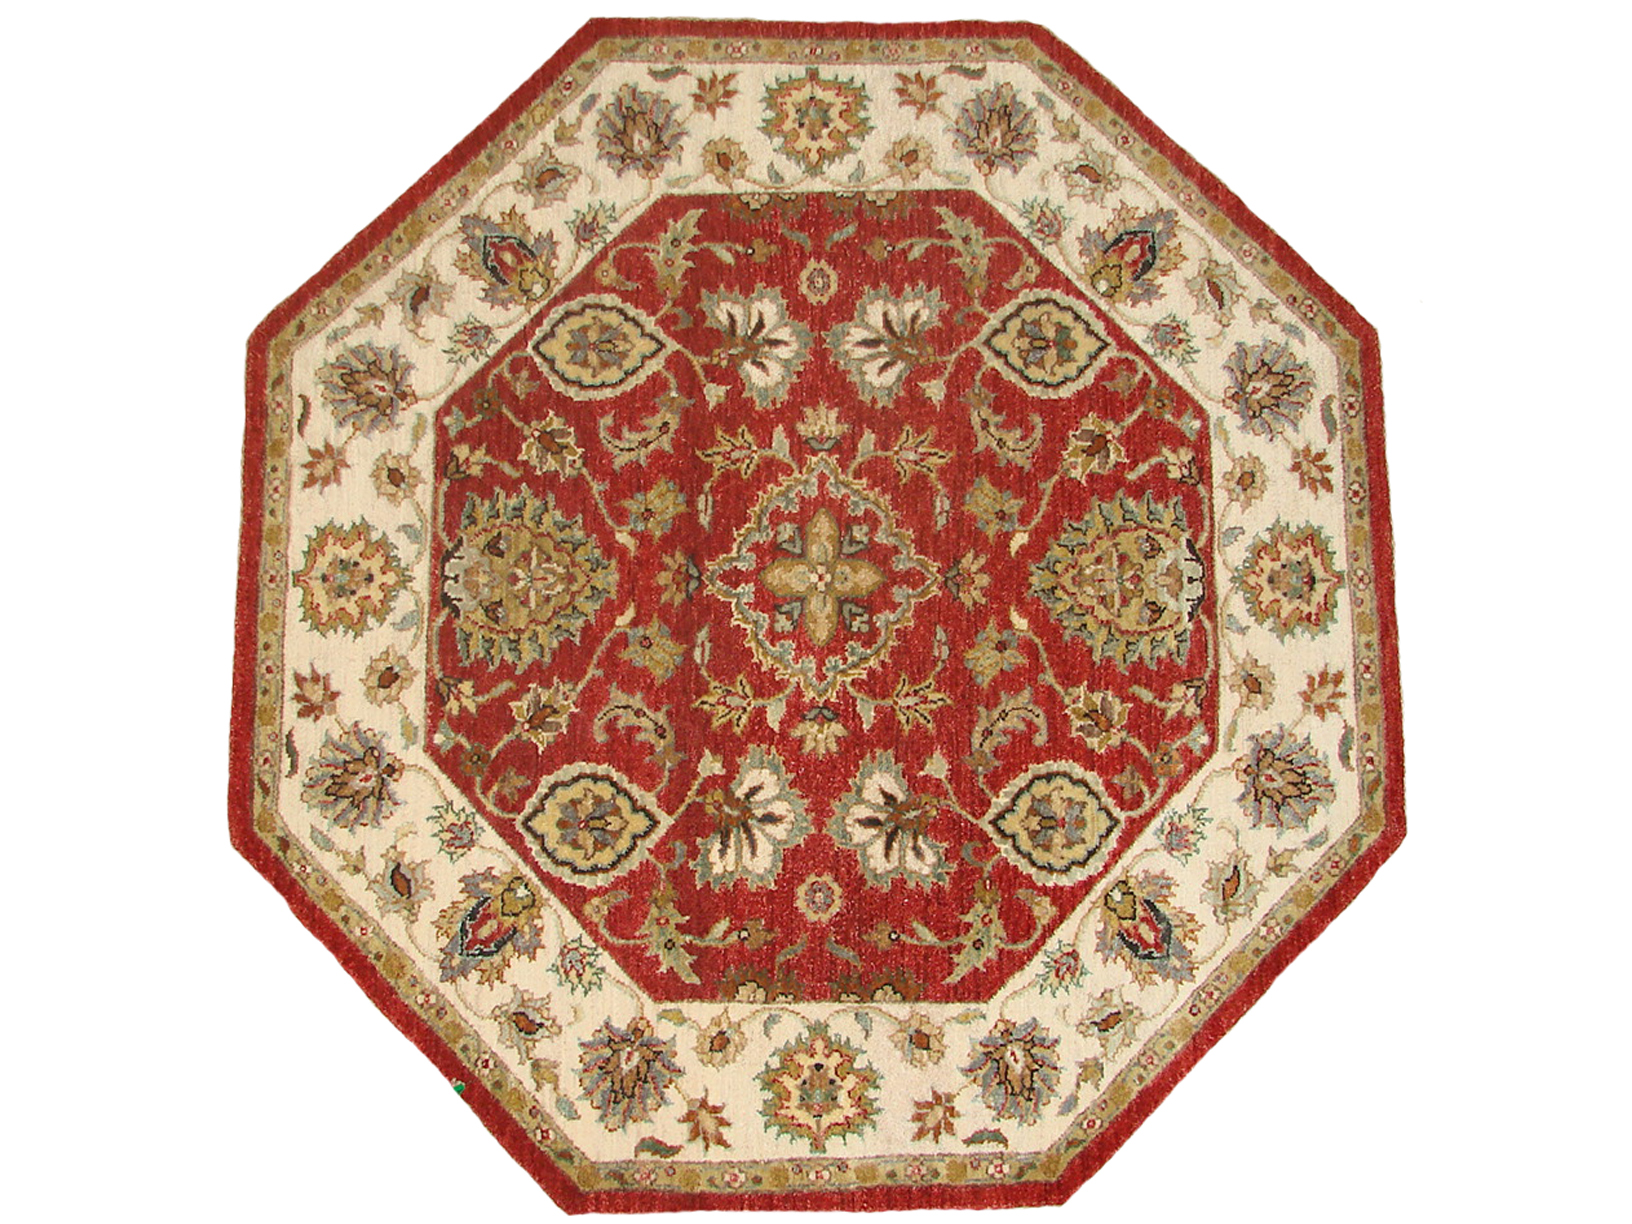 4 ft. Round & Square Traditional Hand Knotted Wool Area Rug - MR18734